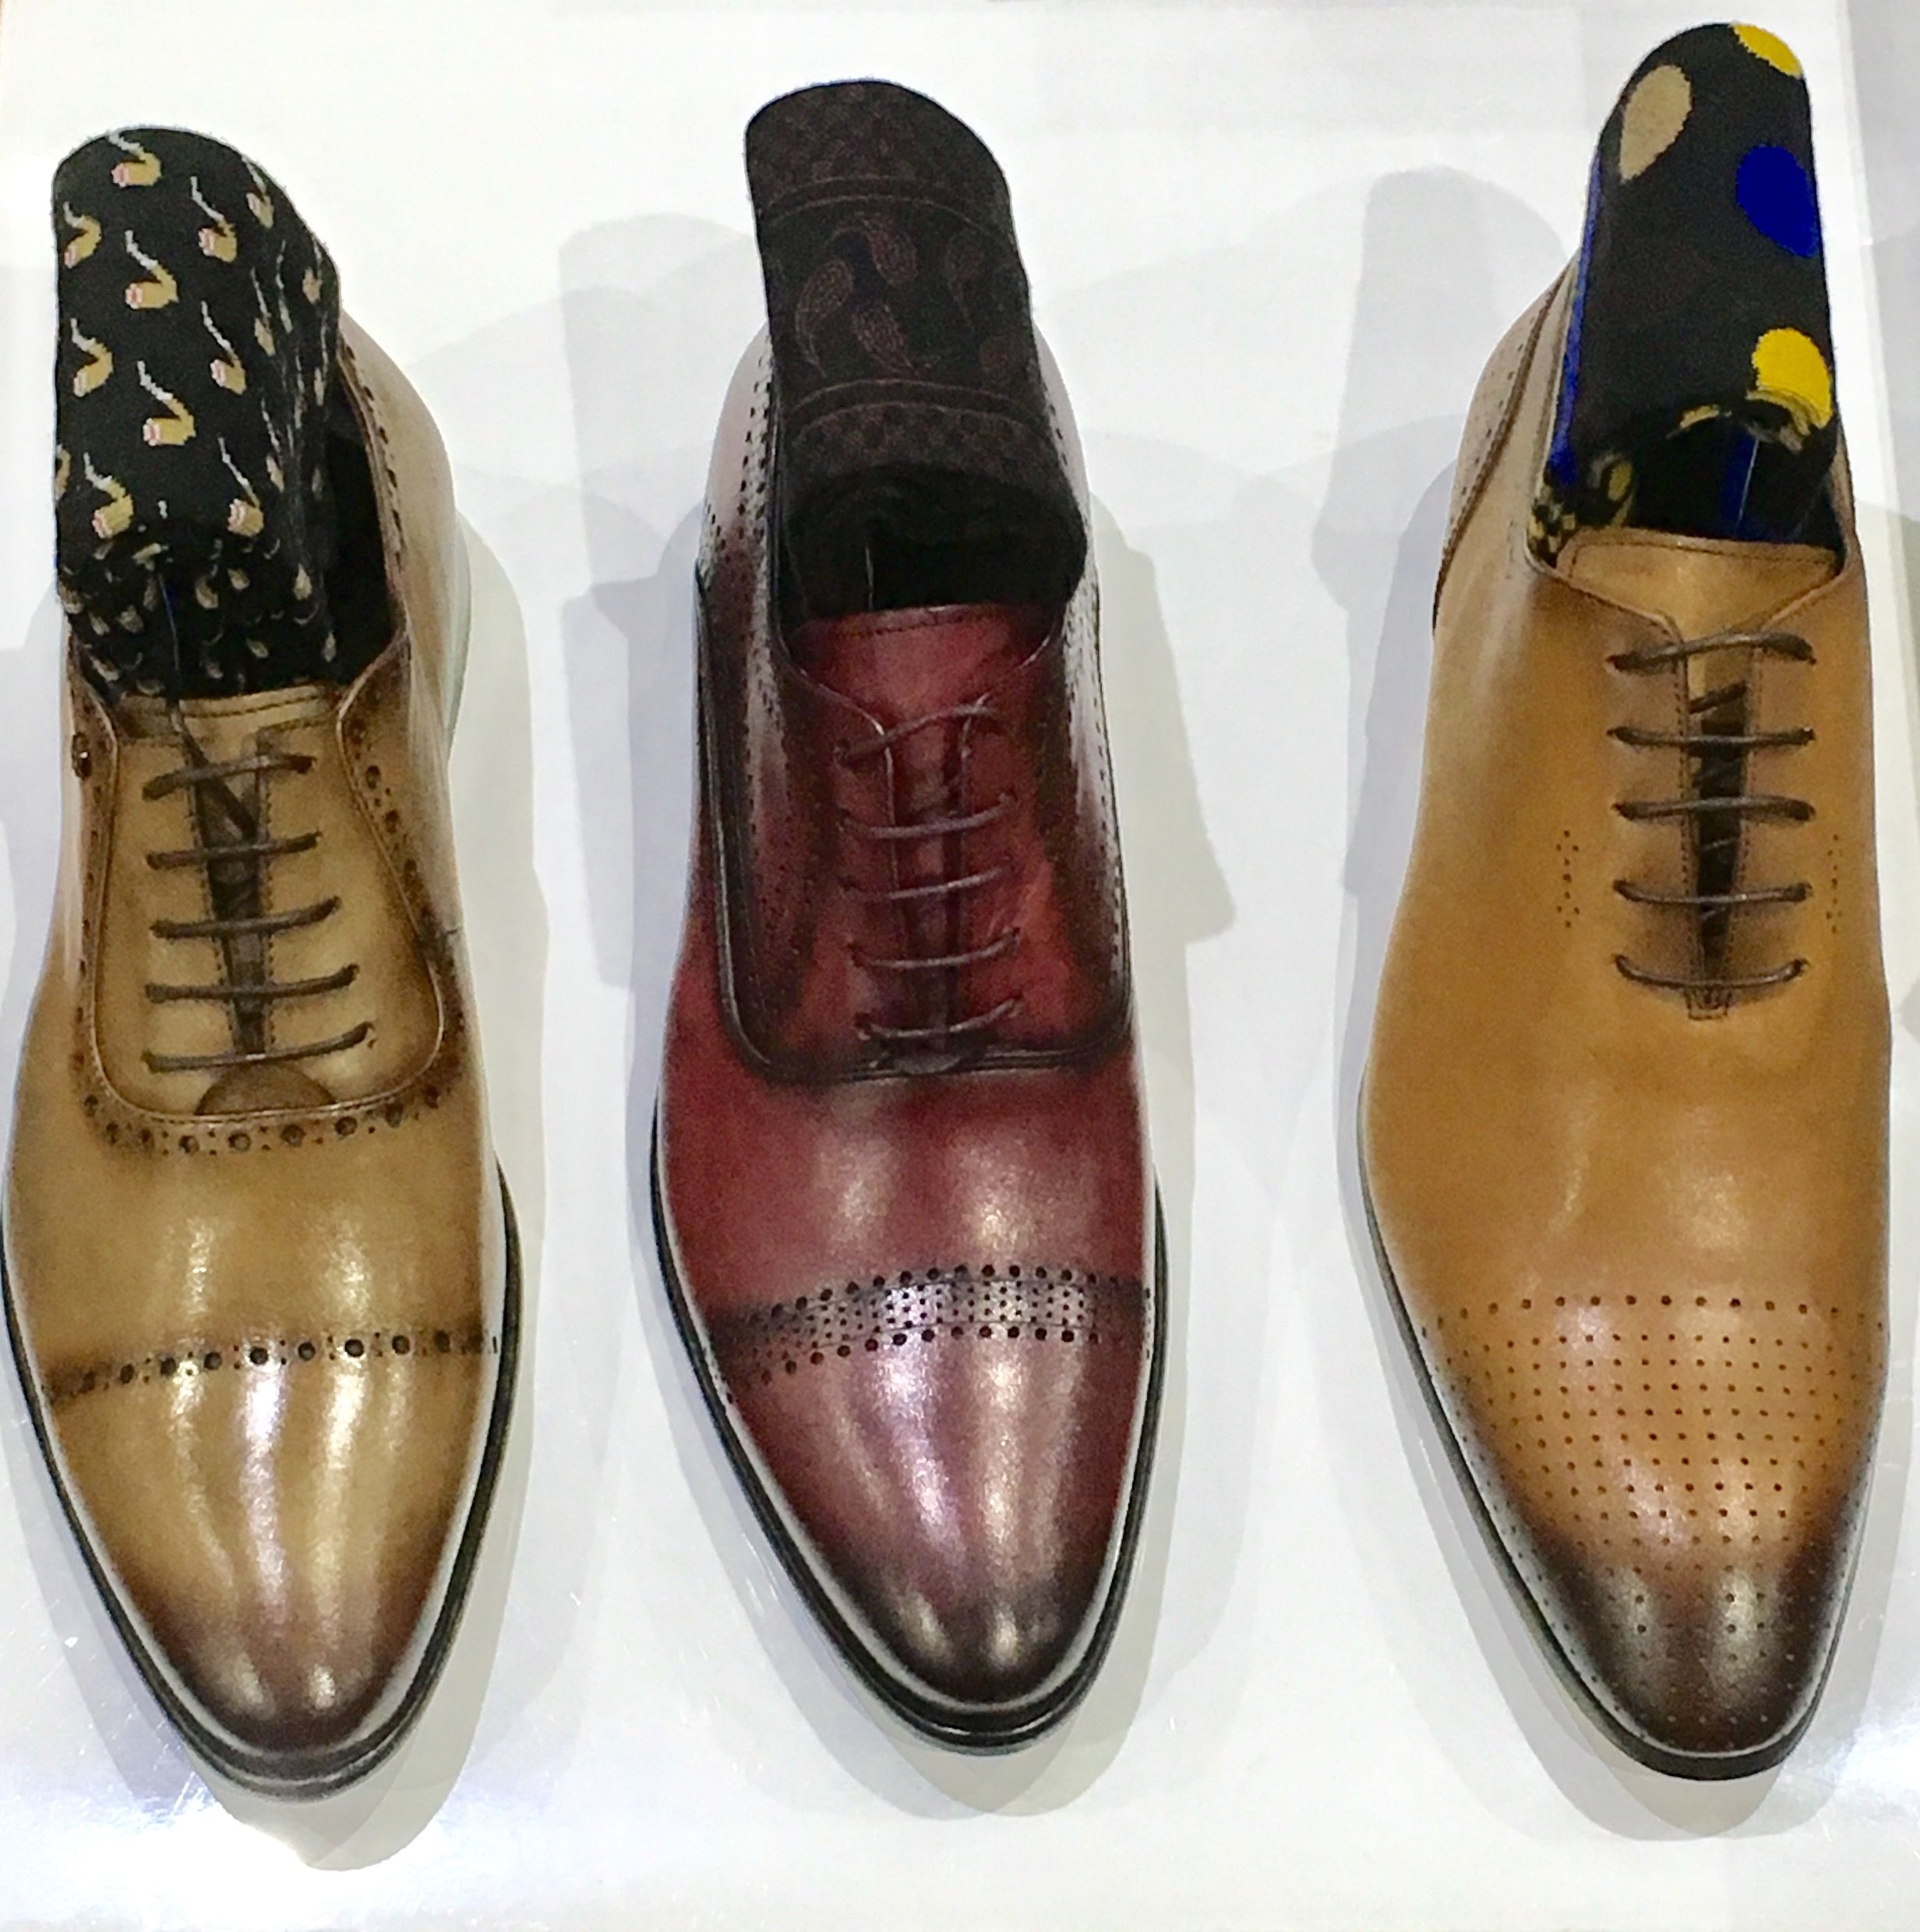 Shoes by Luciano Bellini